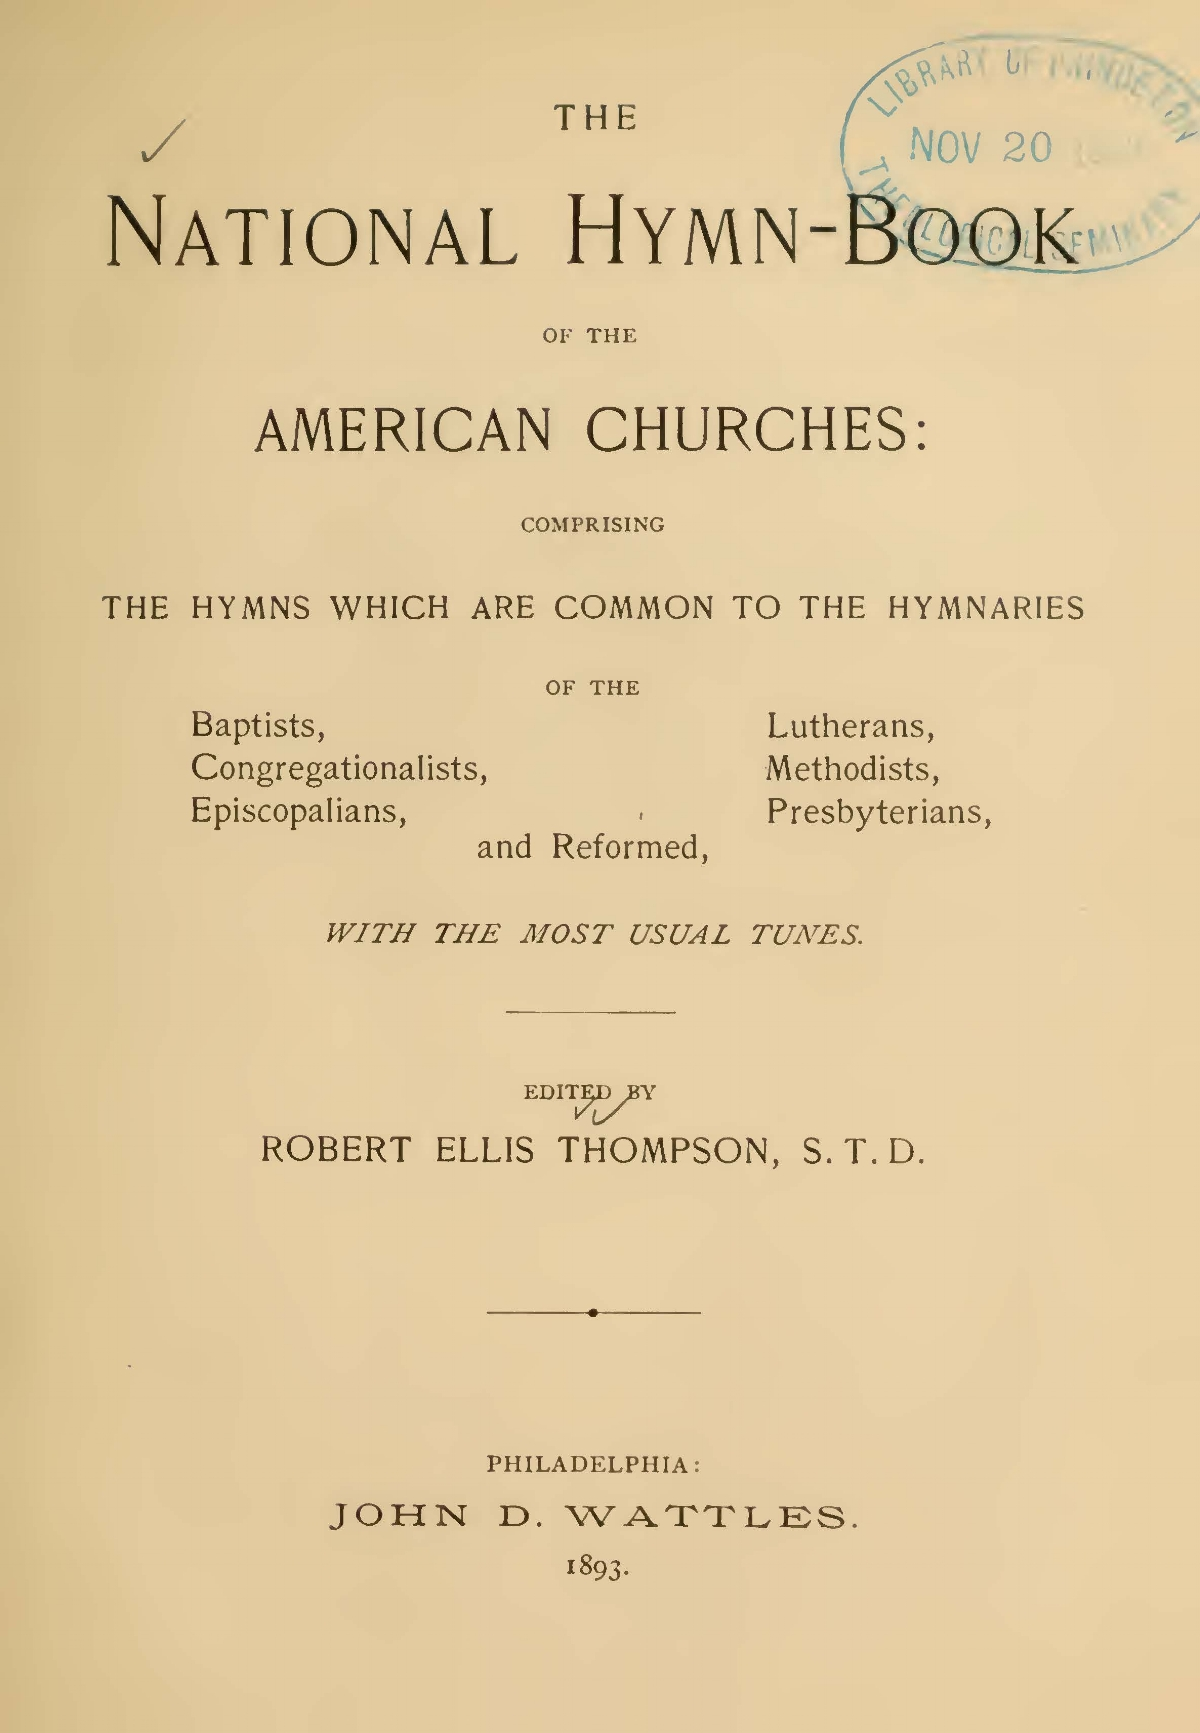 Thompson, Robert Ellis, The National Hymn-Book of the American Churches Title Page.jpg